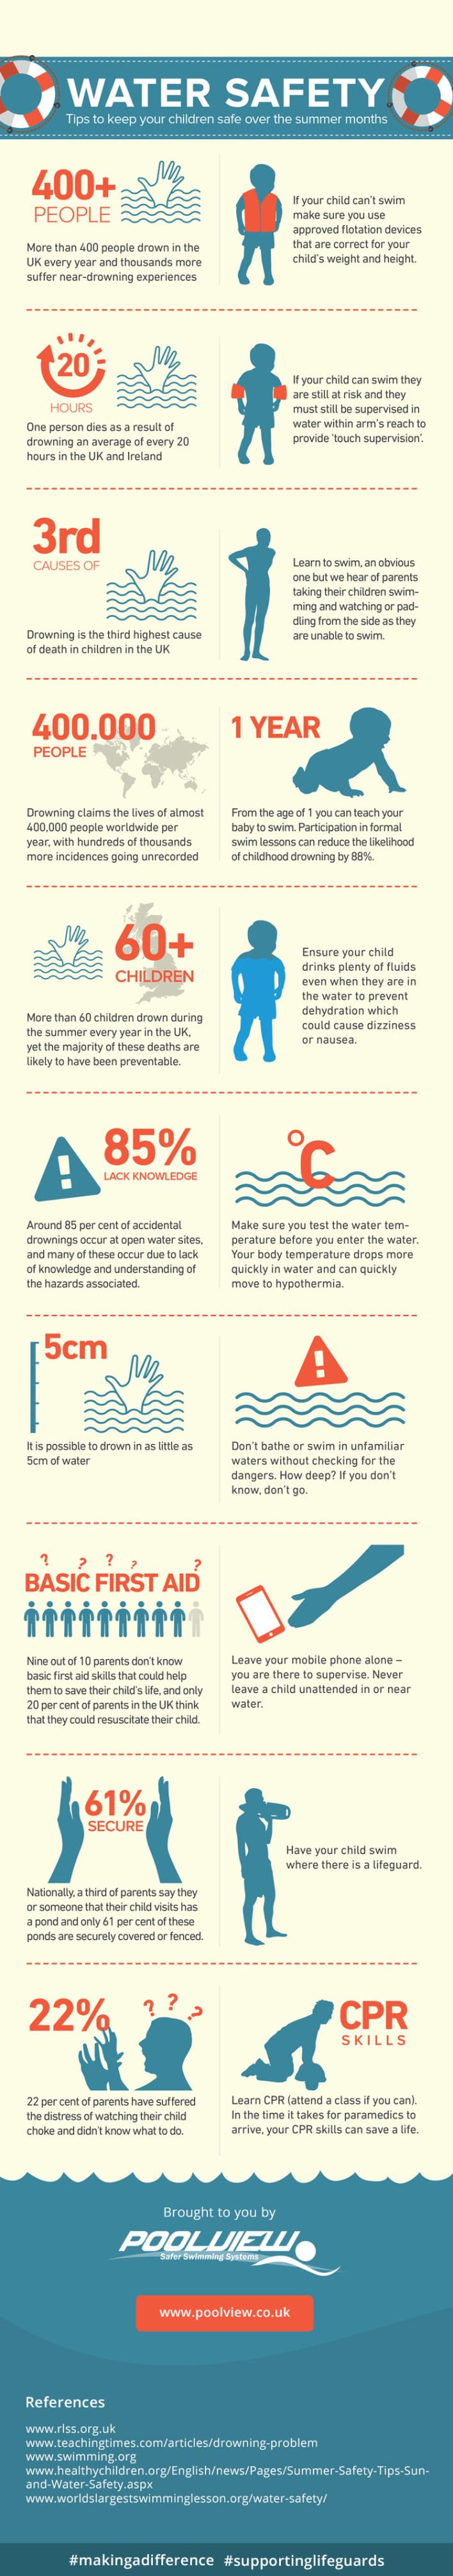 swimming-safety-infographic